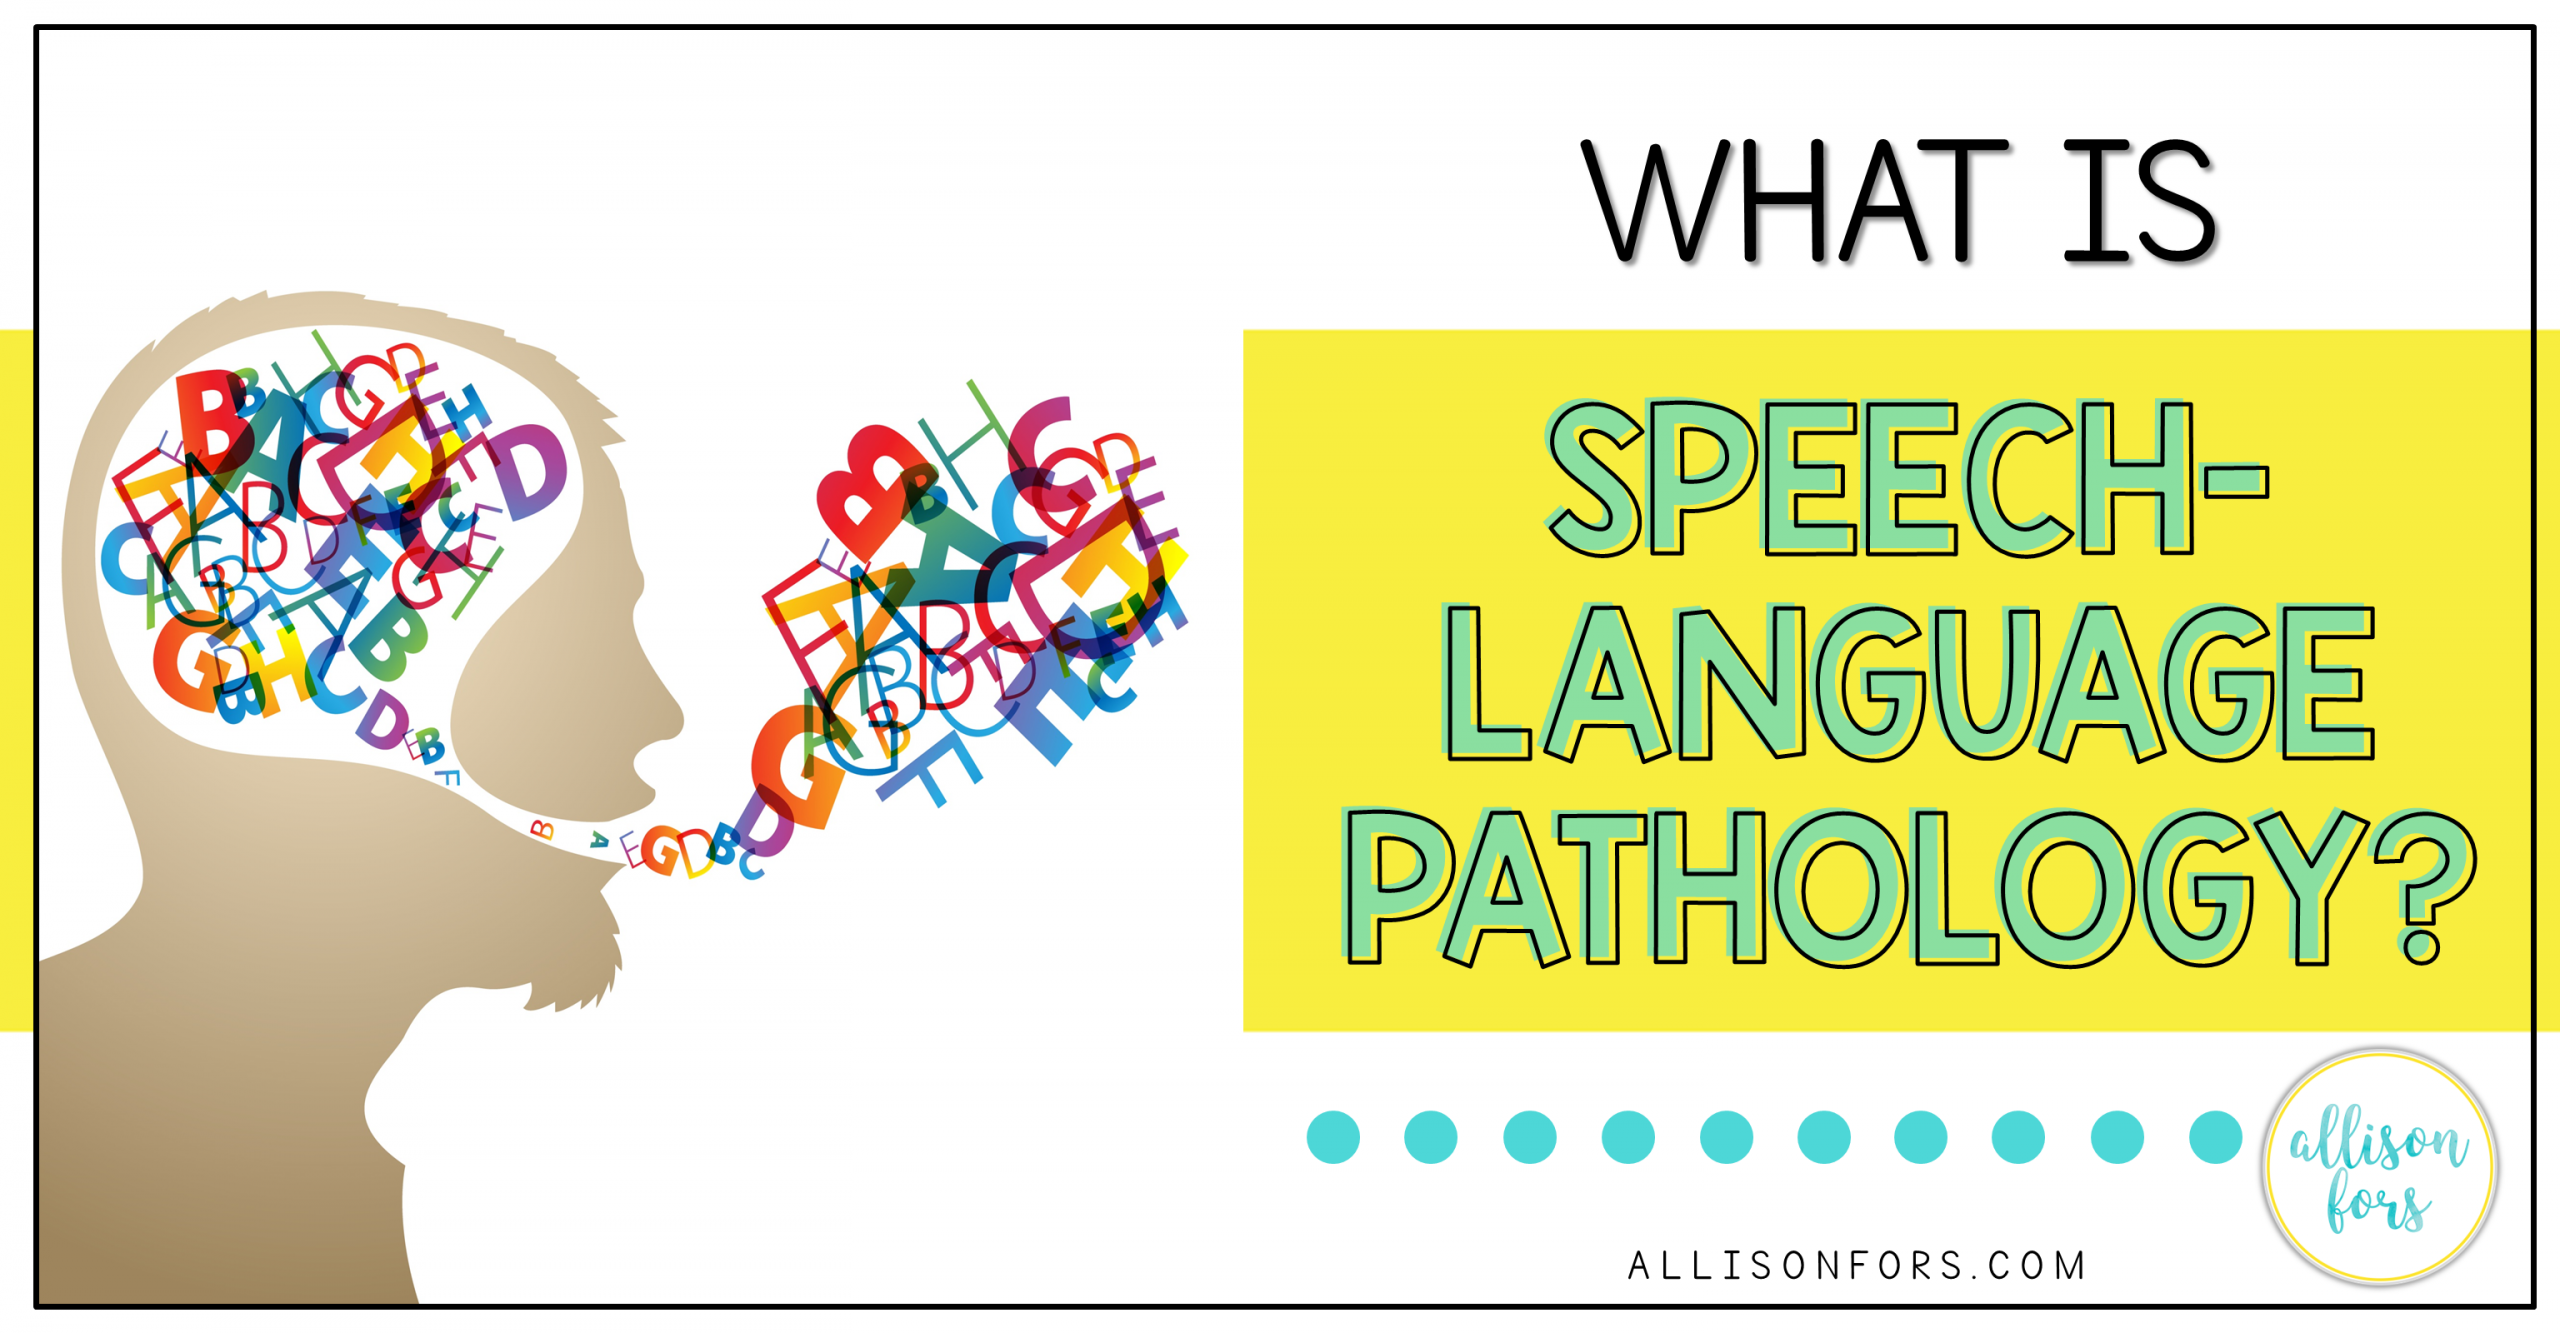 What is Speech-Language Pathology?